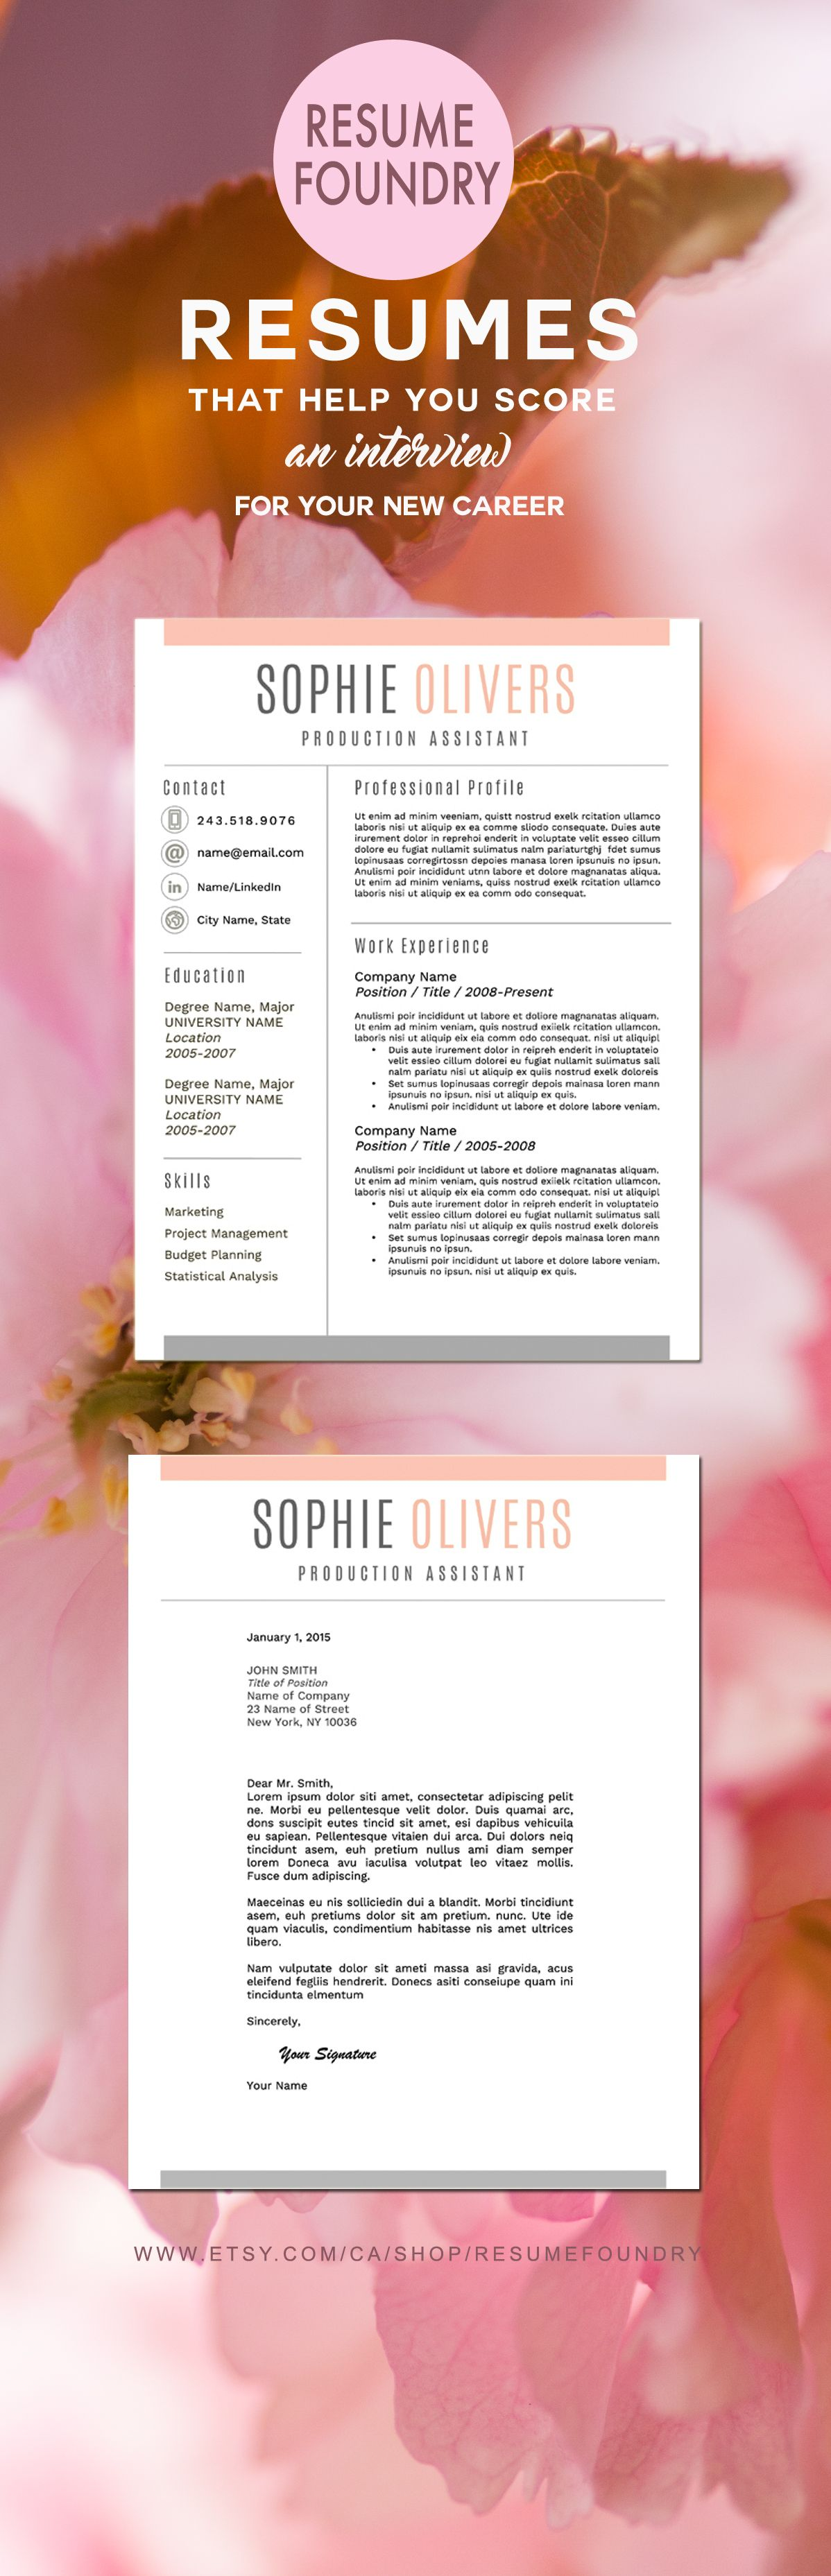 elegant resume template instant for use microsoft elegant resume template instant for use microsoft word resume foundry